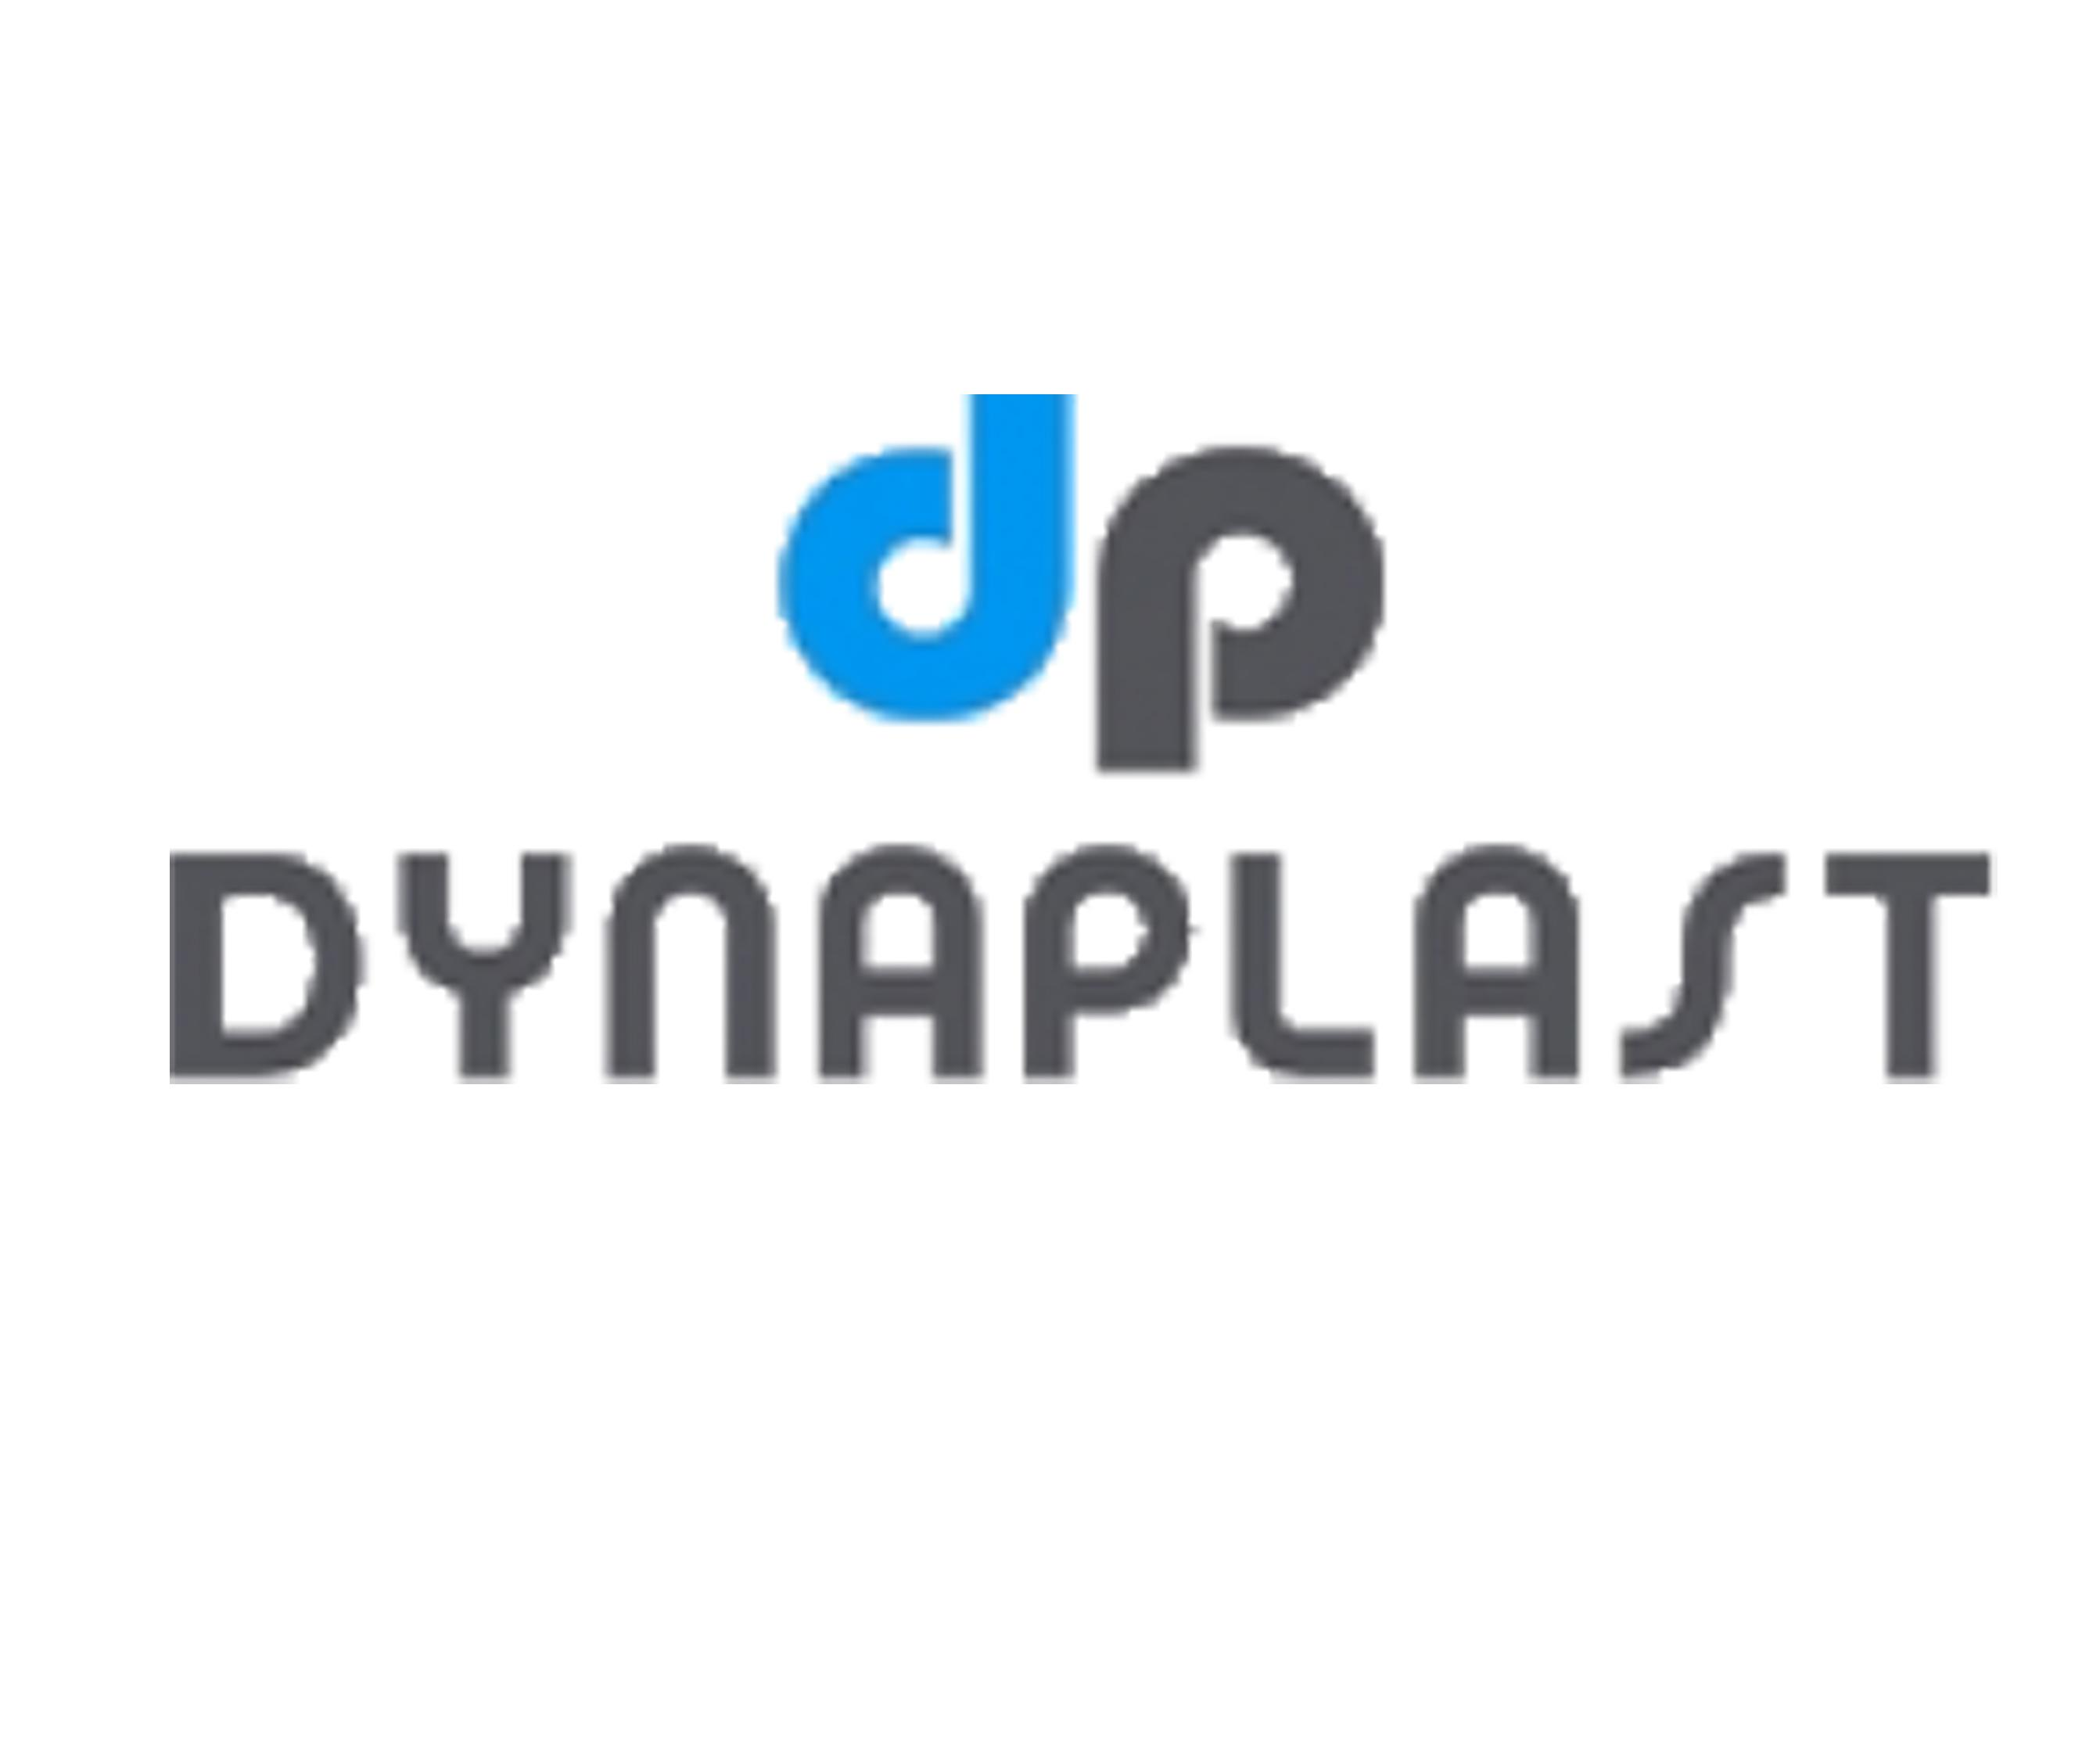 DYNAPLAST PACKAGING (VIET NAM) COMPANY